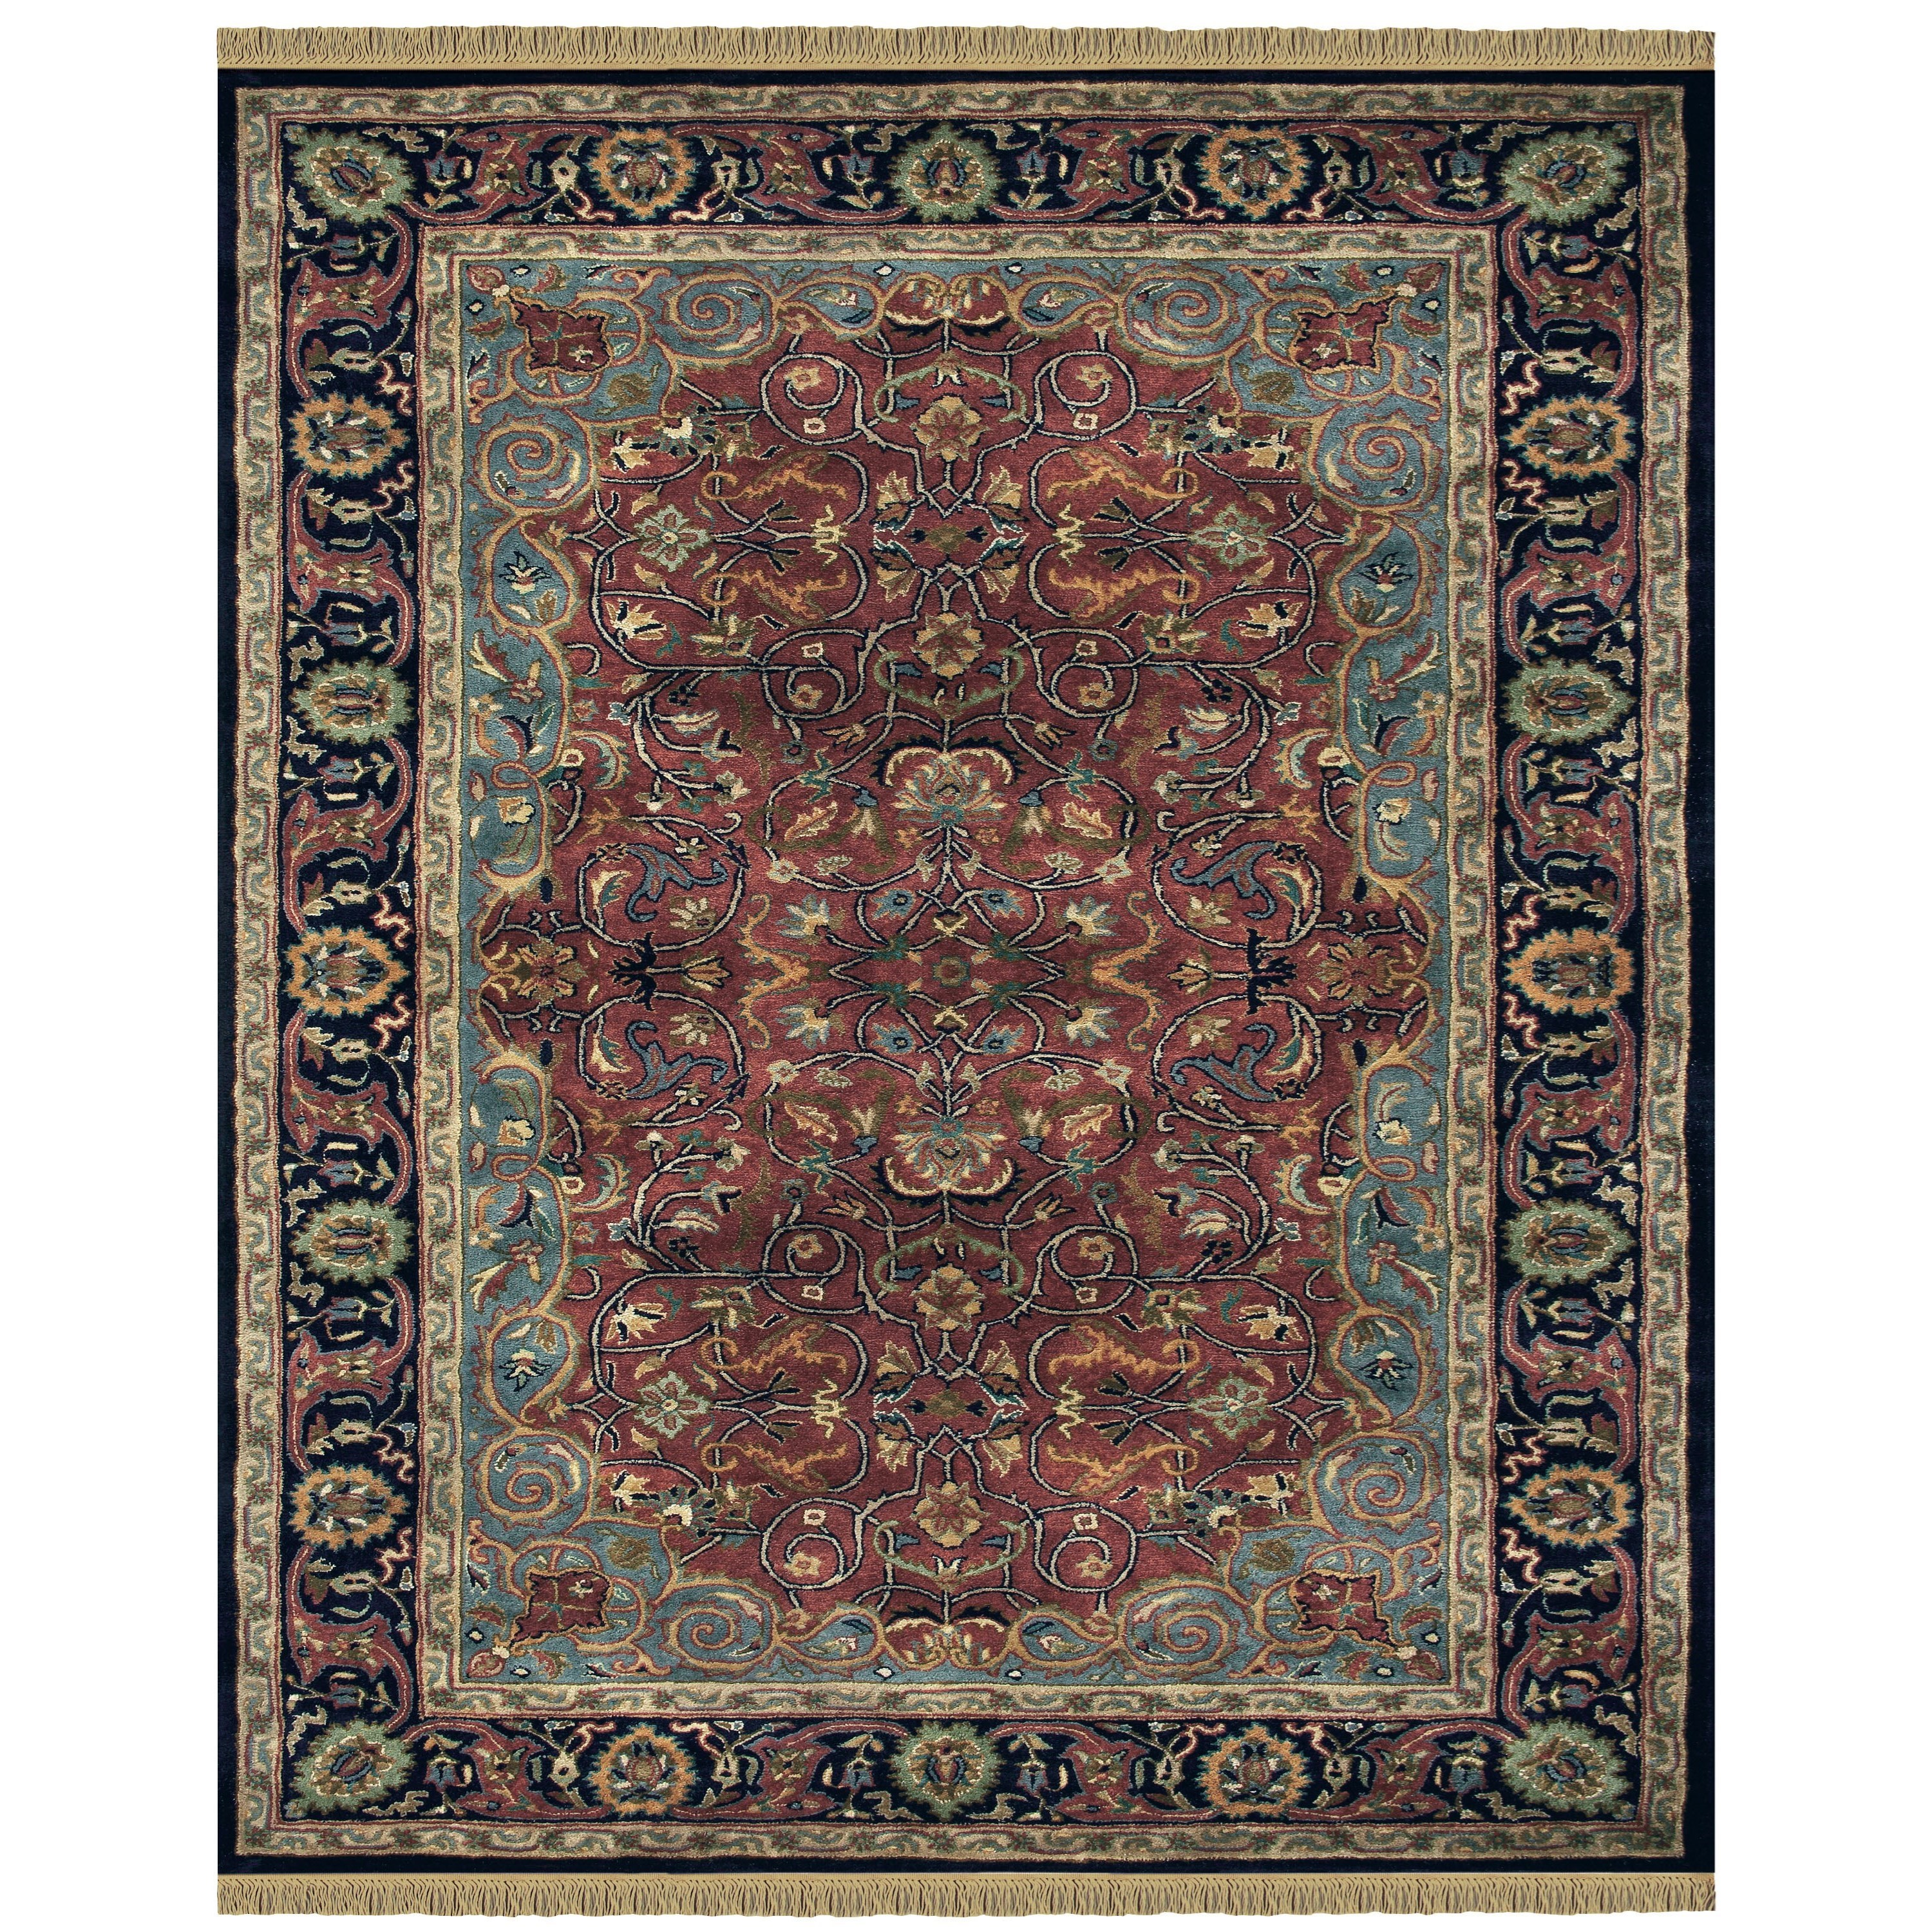 """Amore Plum 9'-6"""" x 13'-6"""" Area Rug by Feizy Rugs at Sprintz Furniture"""